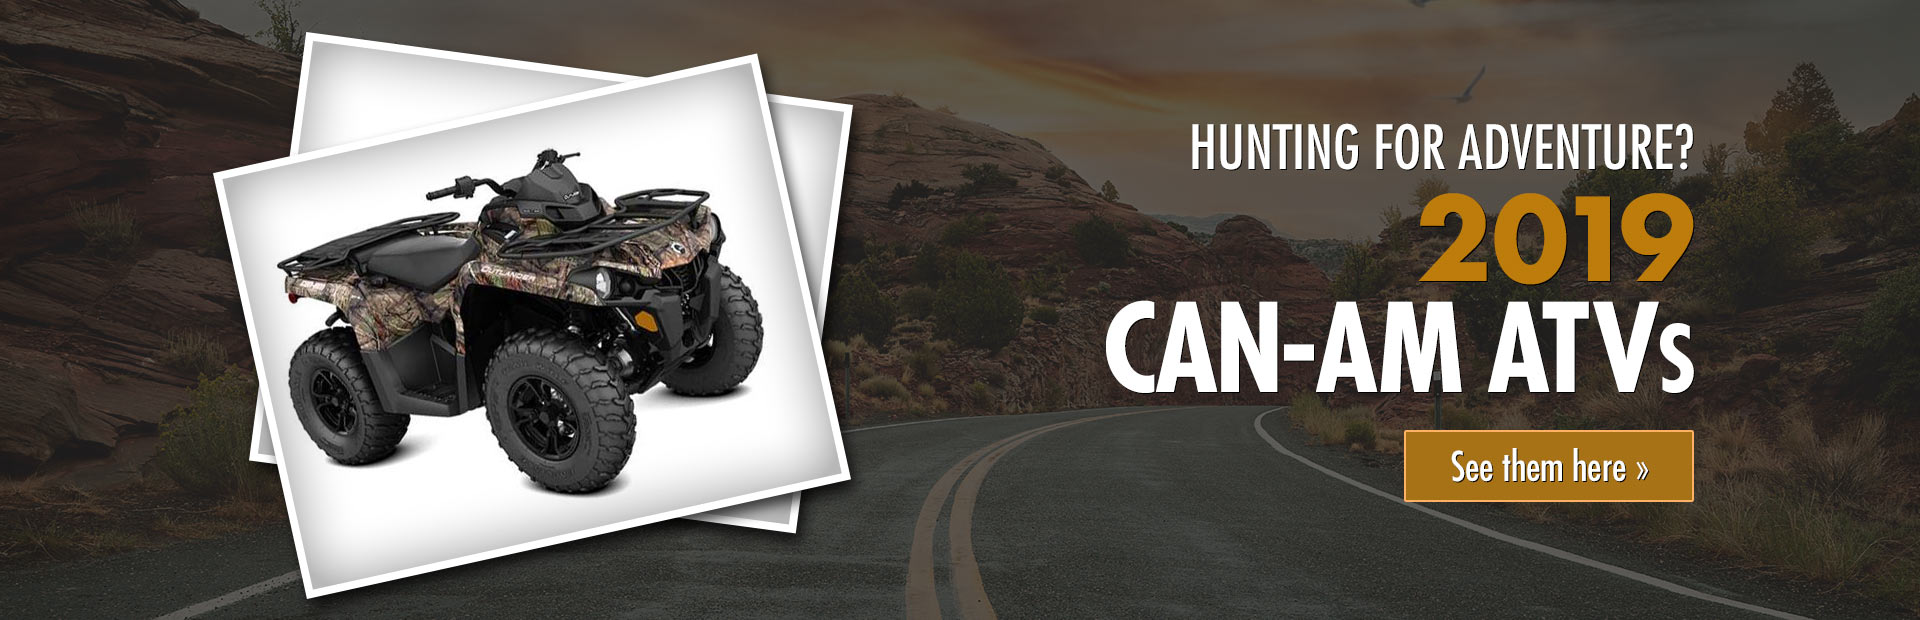 2019 Can-Am ATVs: Click here to view the inventory.